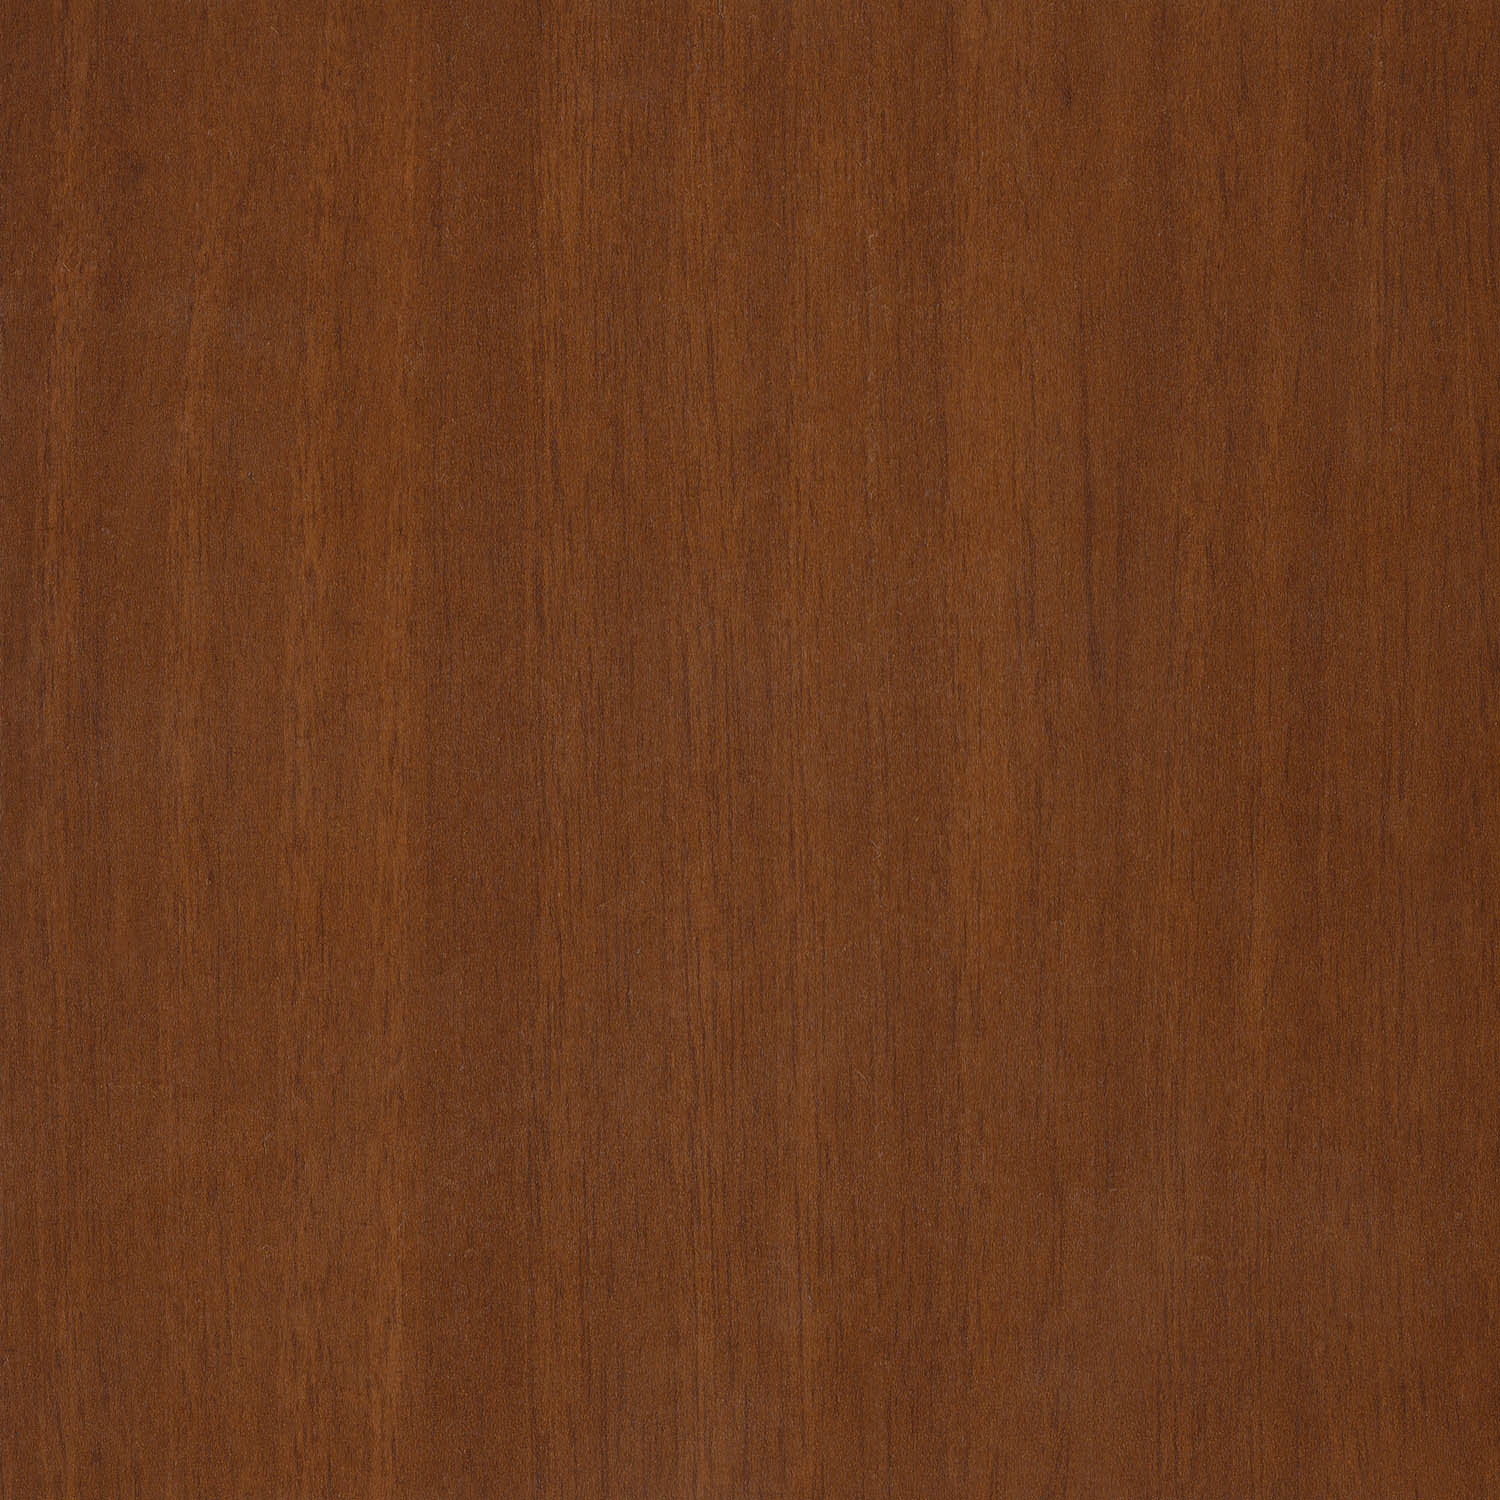 Painted Fiberboard 4071 Hazelnut